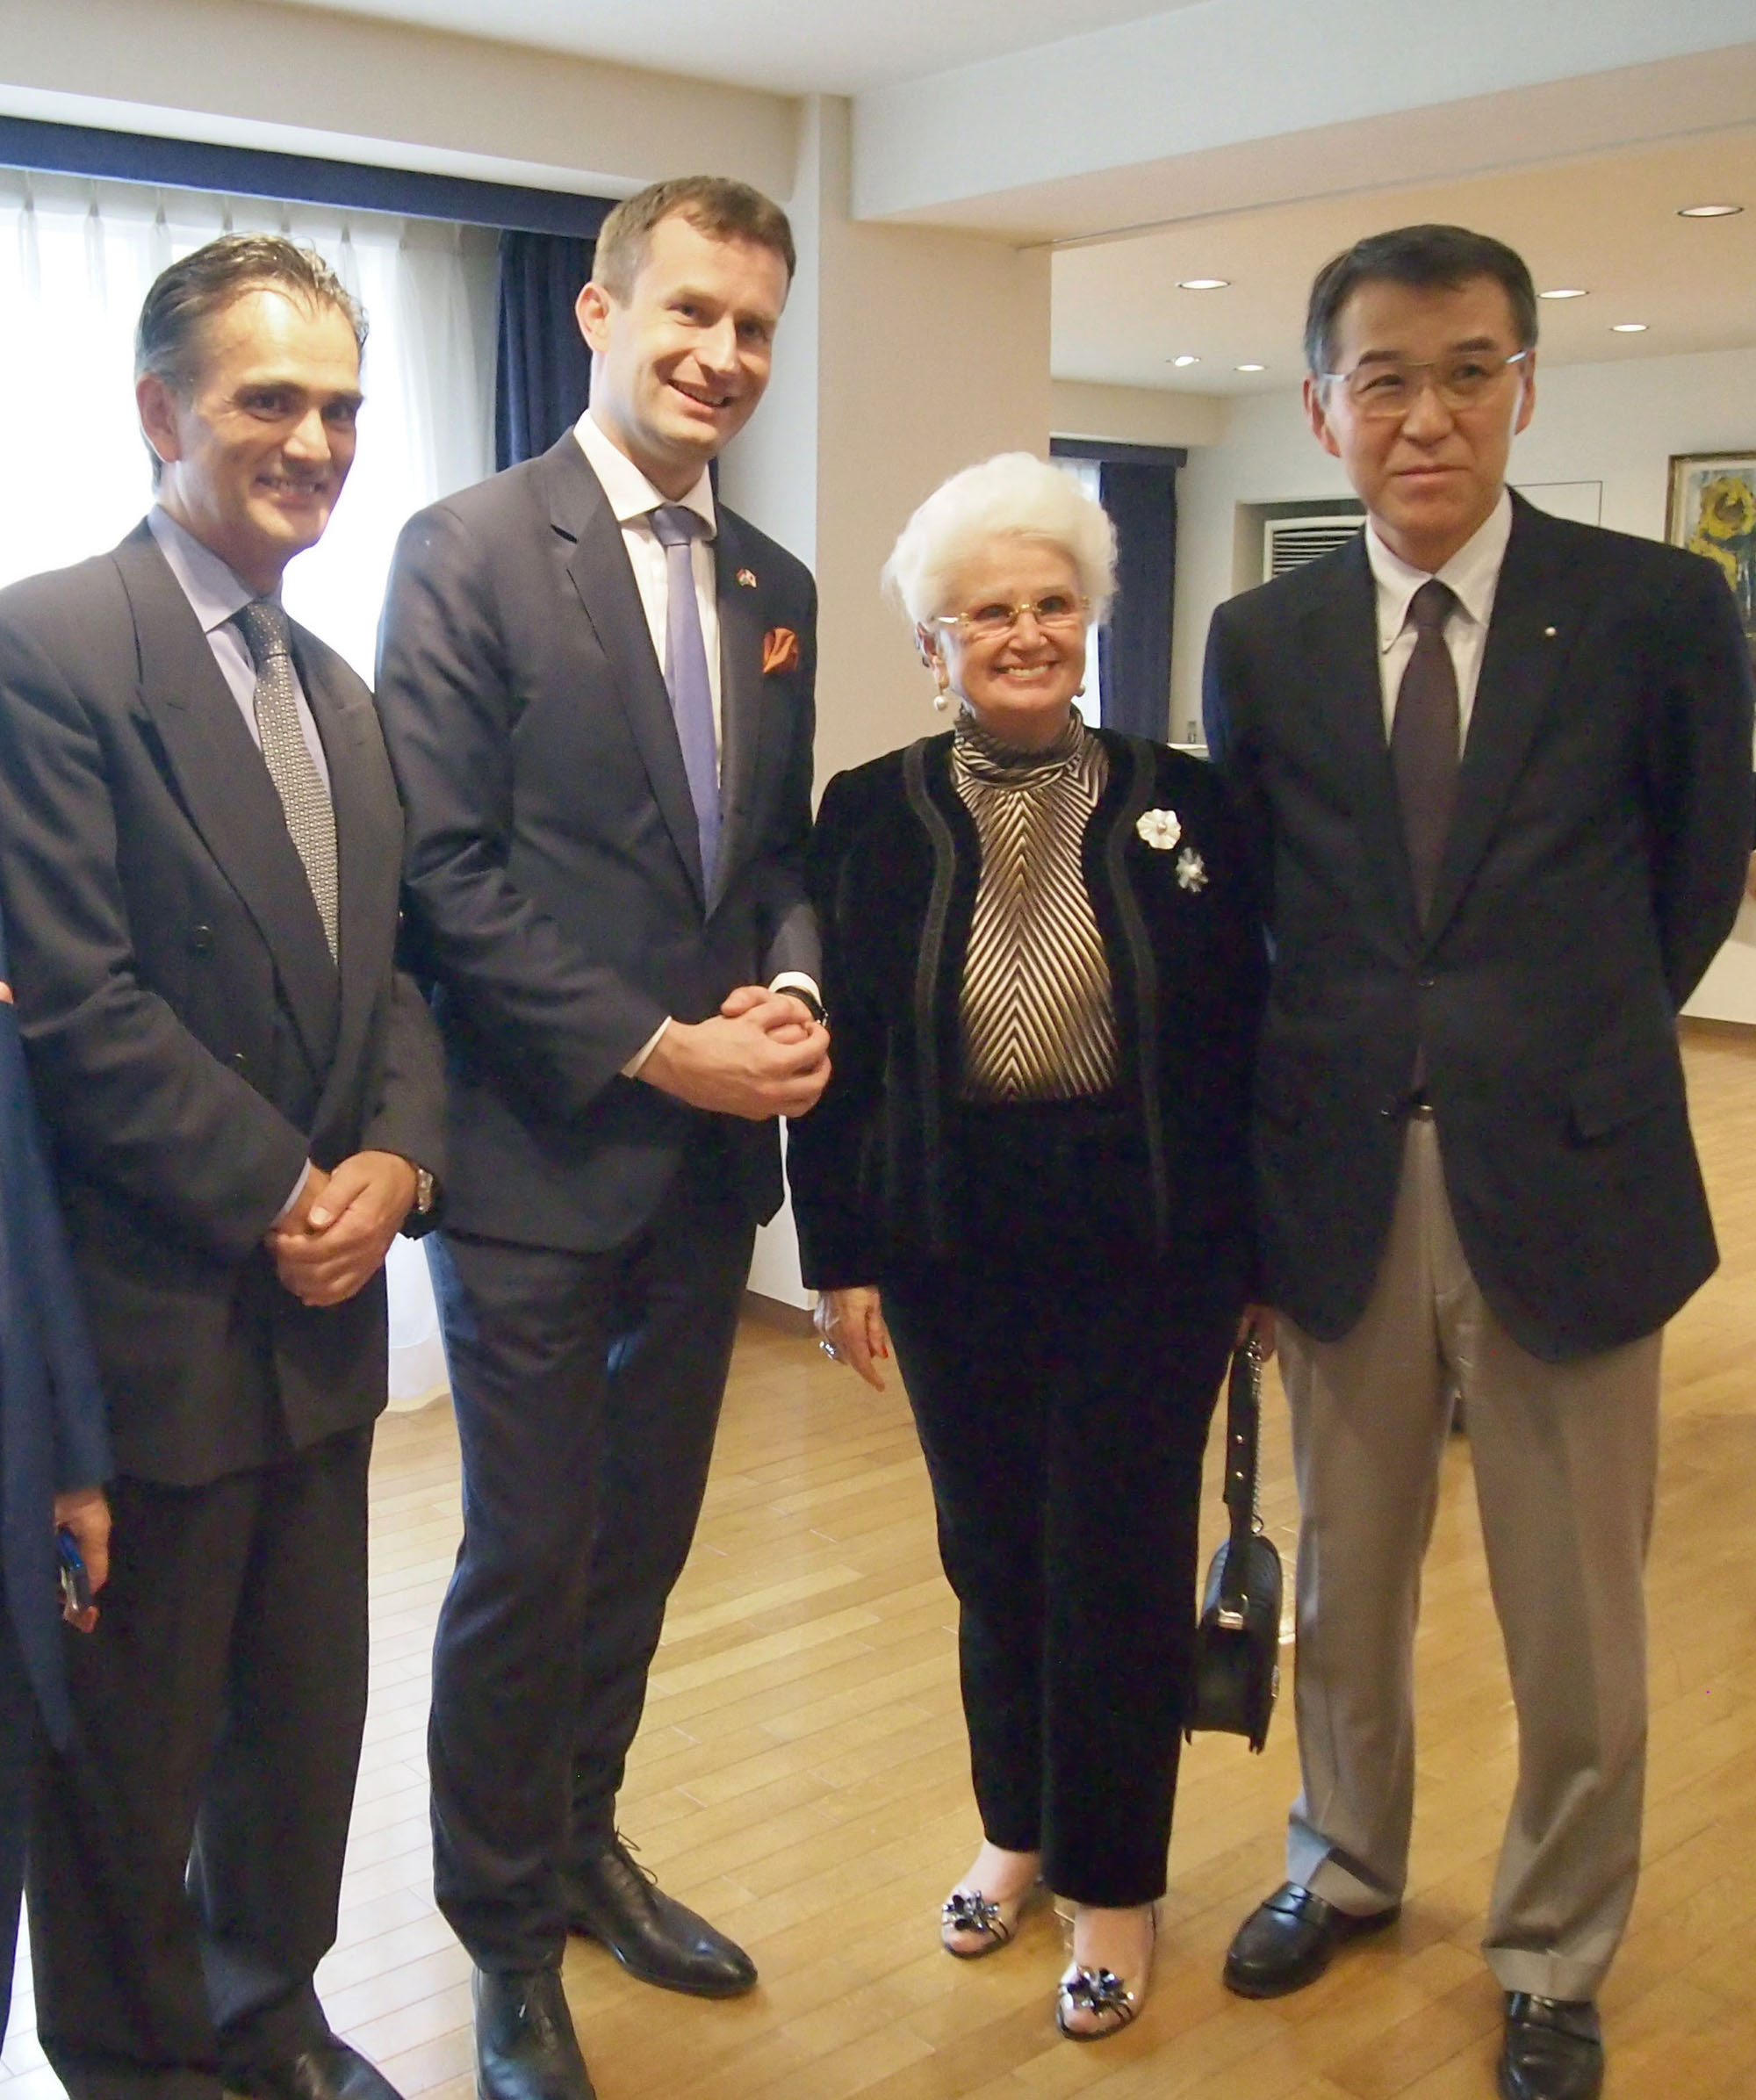 Hungarian Ambassador Nobert Palanovics (second from left) joins guests during a reception to celebrate Hungary's national day at the embassy in Tokyo on Oct. 20. |   EDLEEN OTHMAN